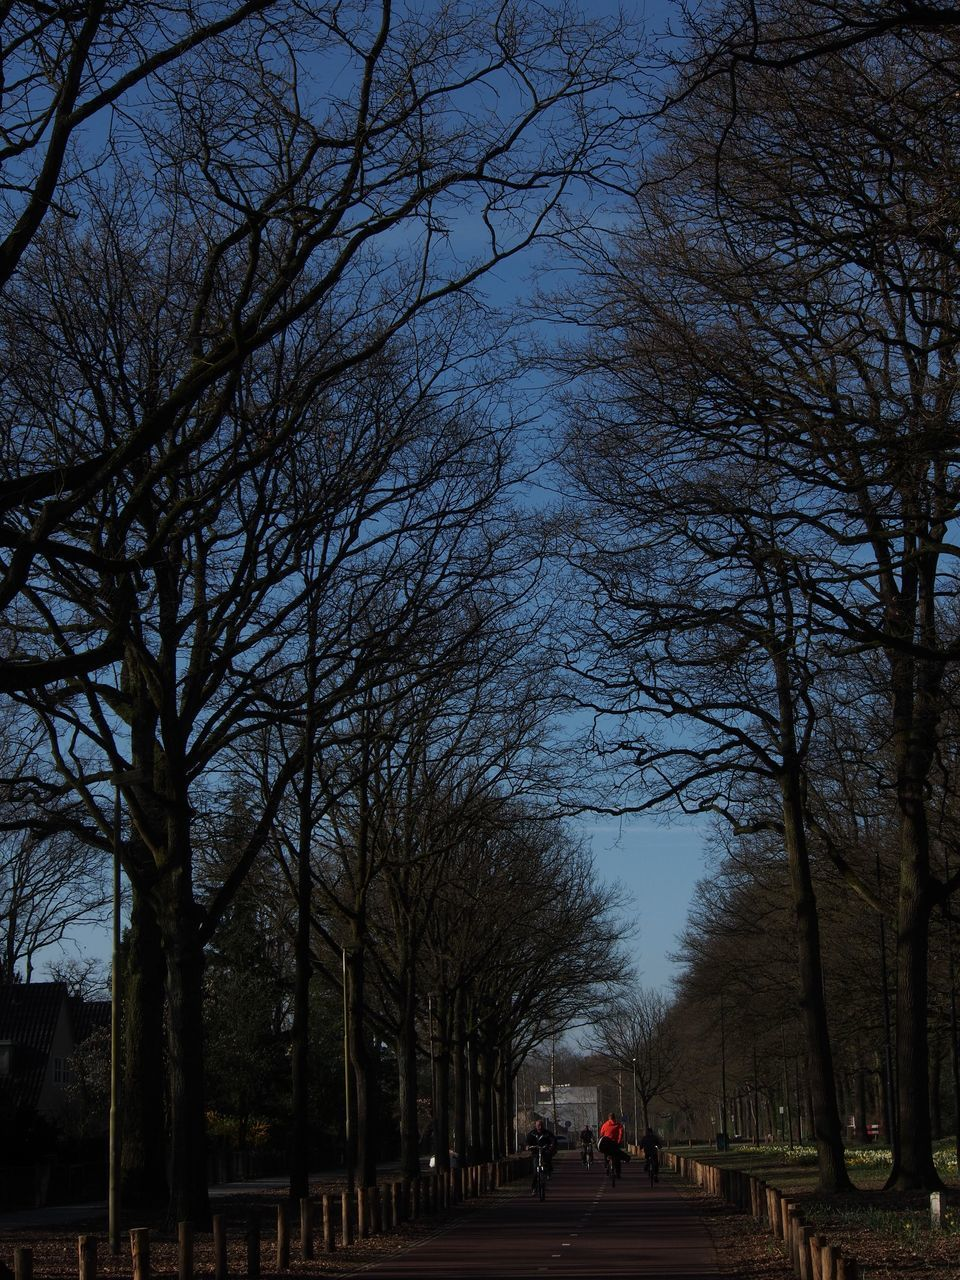 VIEW OF TREES IN CITY